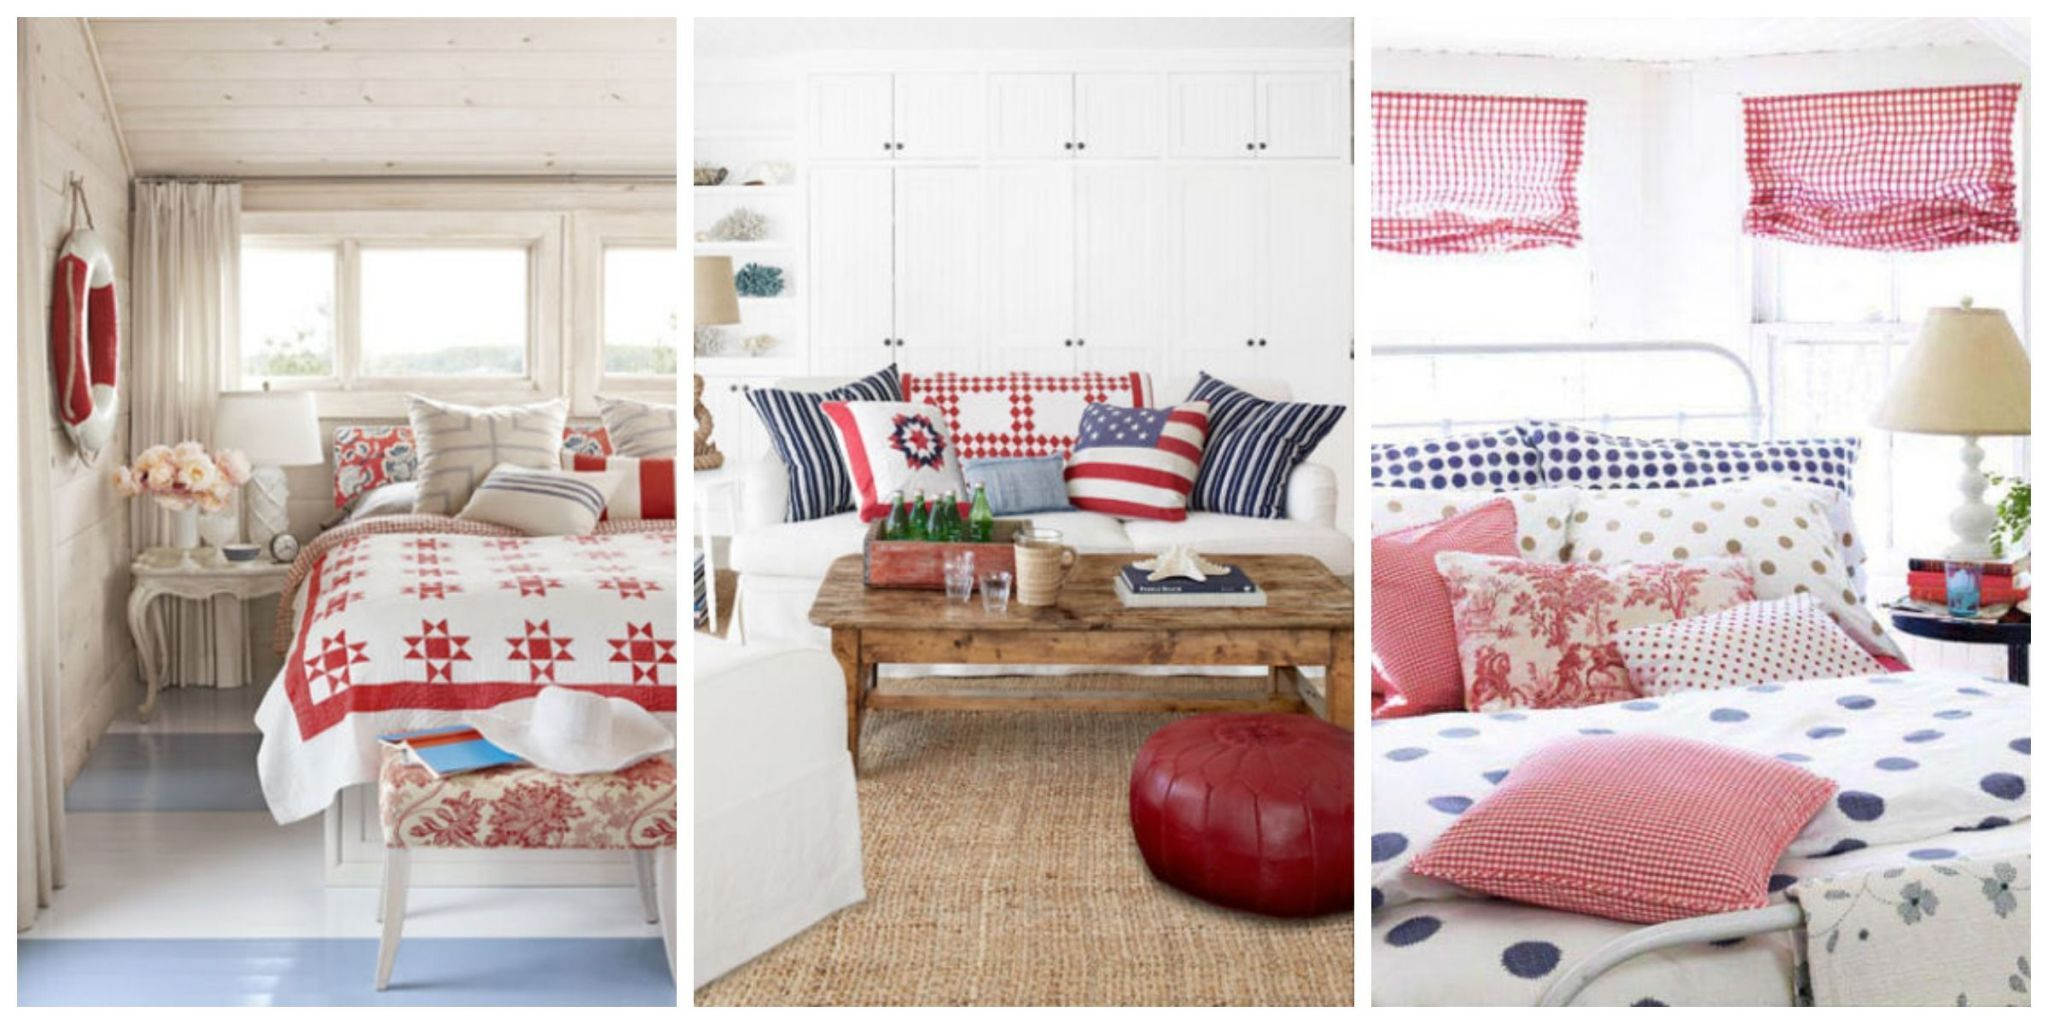 Superieur Display Your Stars And Stripes Style With These Patriotic Decorating Ideas.